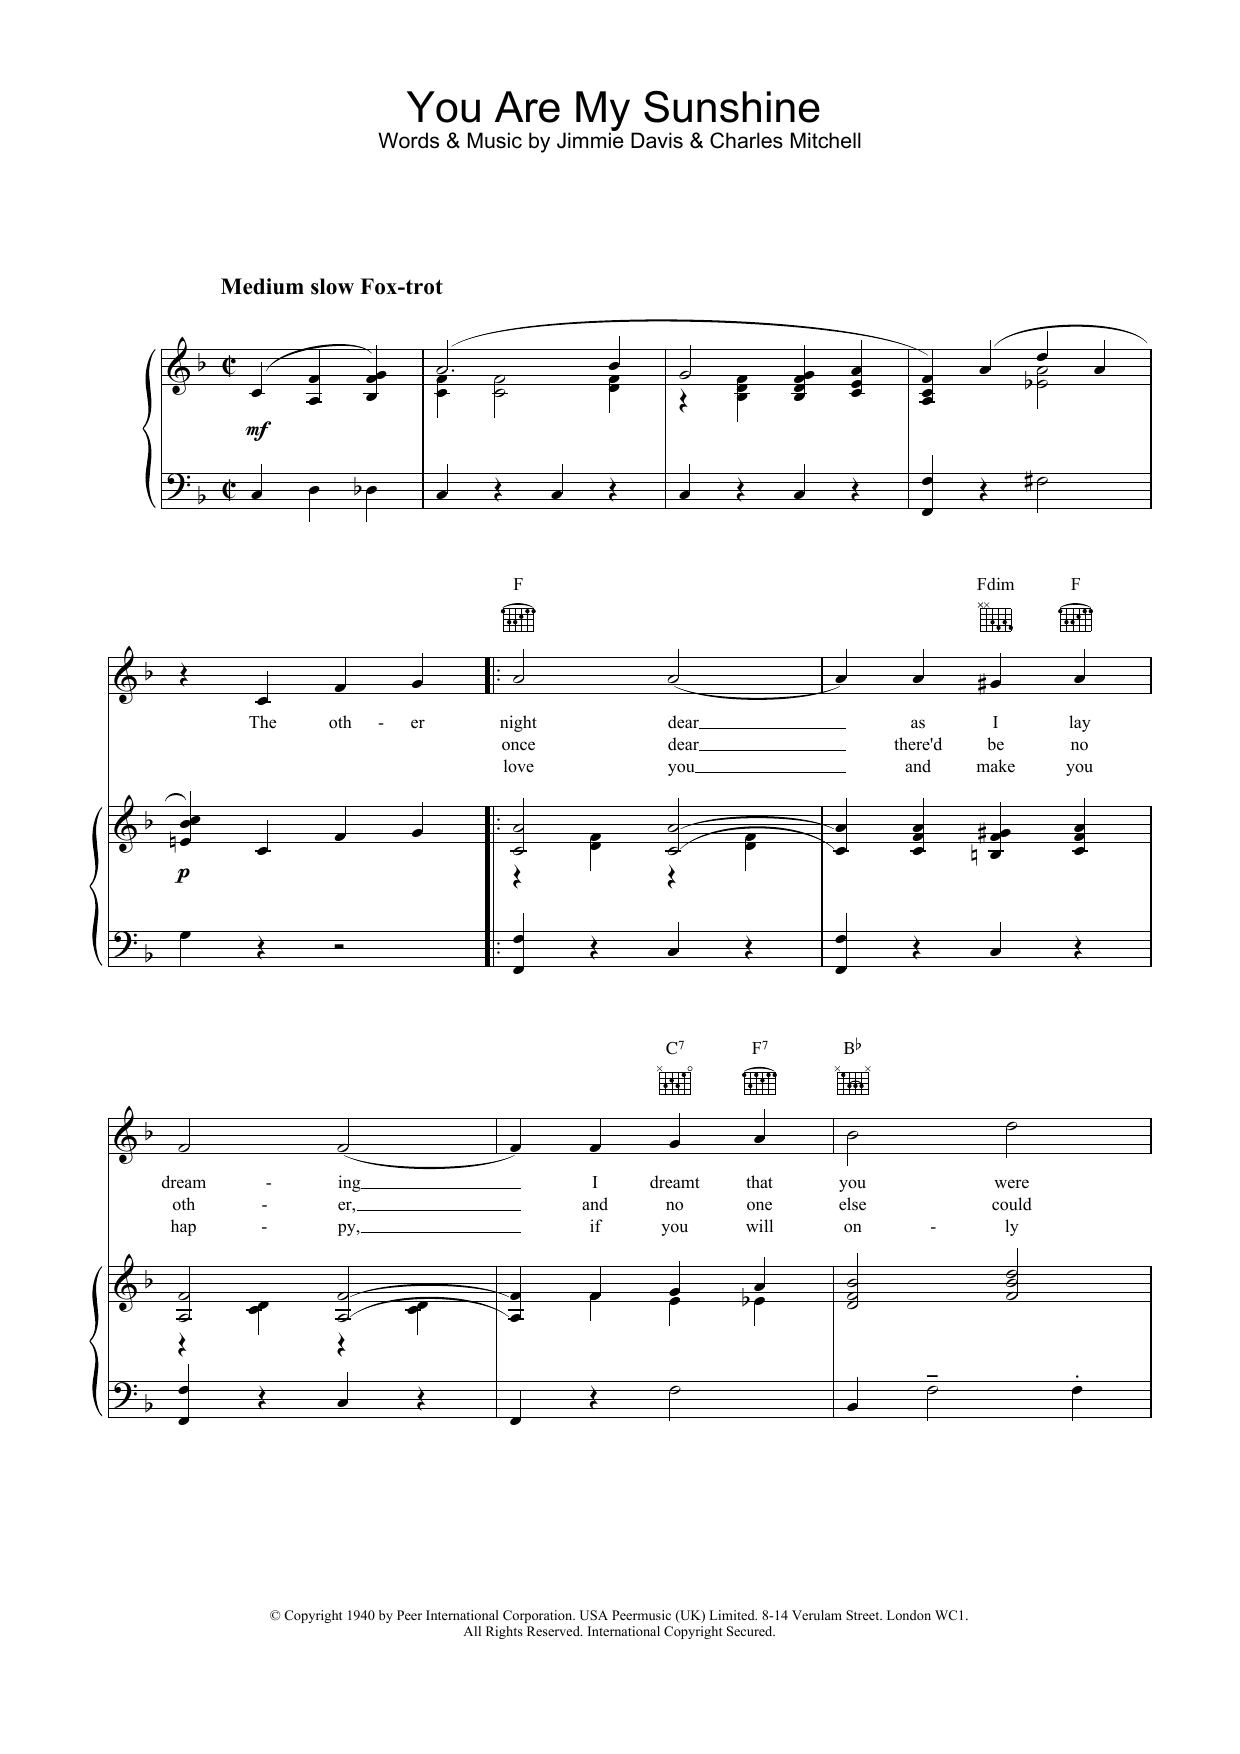 You Are My Sunshine : Sheet Music Direct